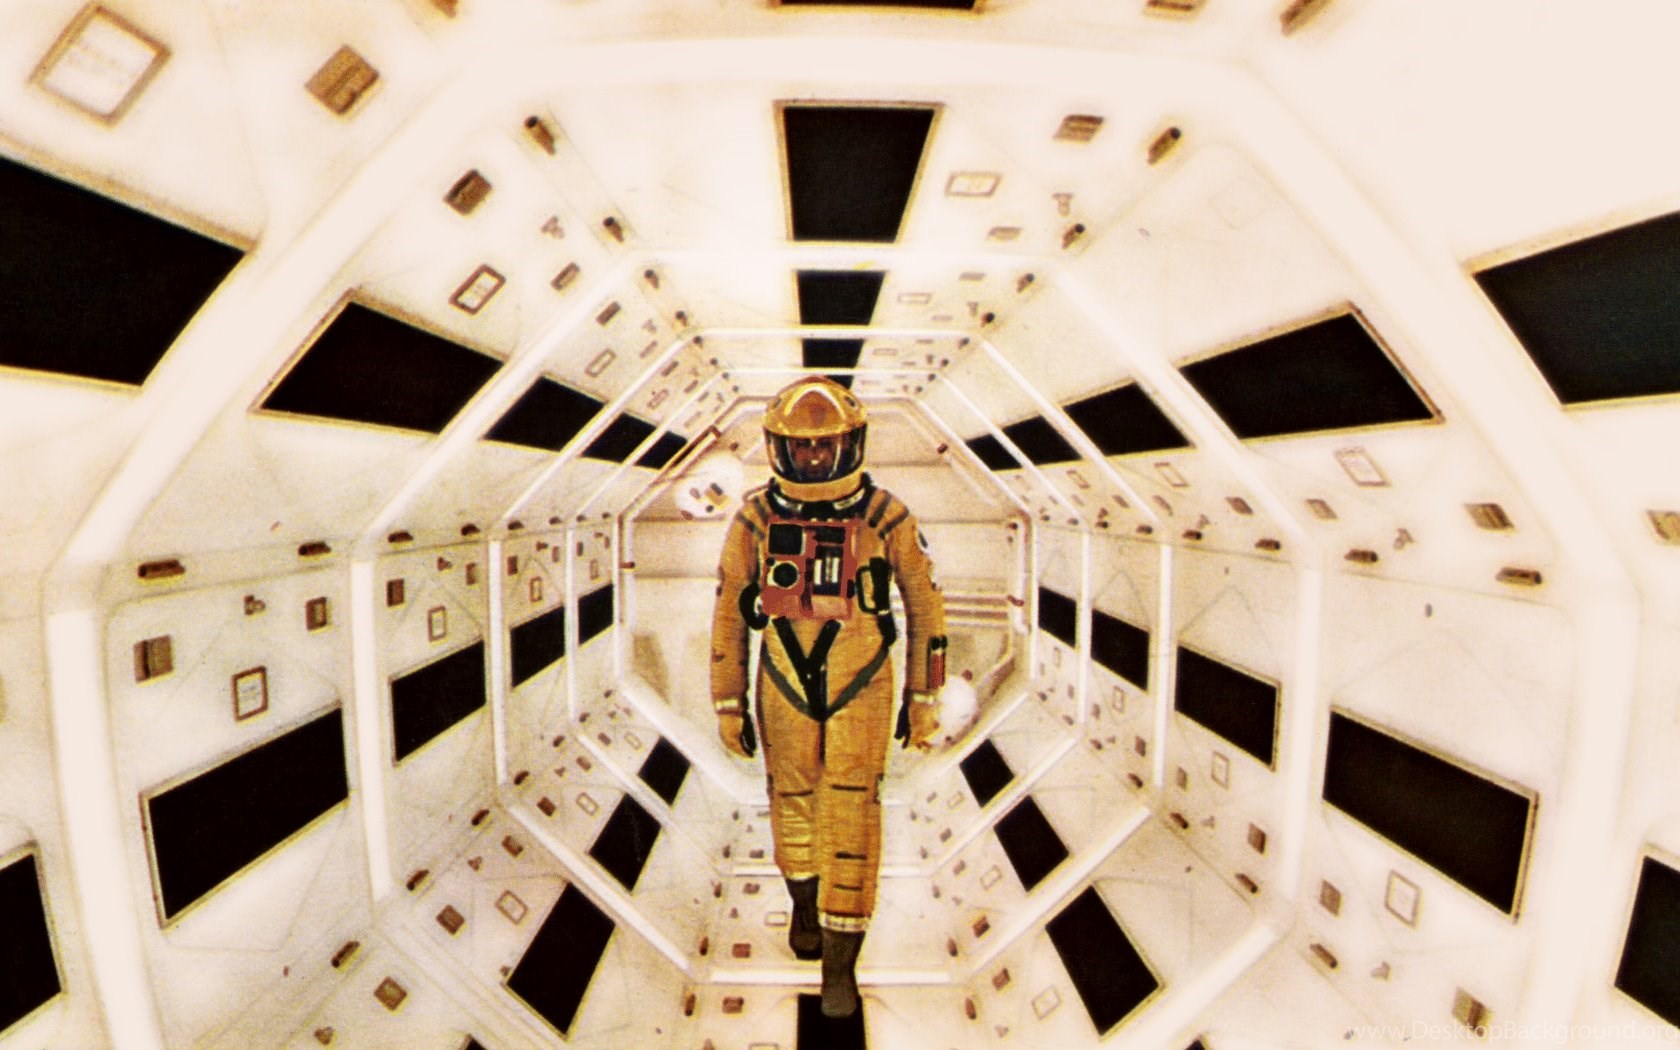 2001 A Space Odyssey Film Wallpapers Desktop Background